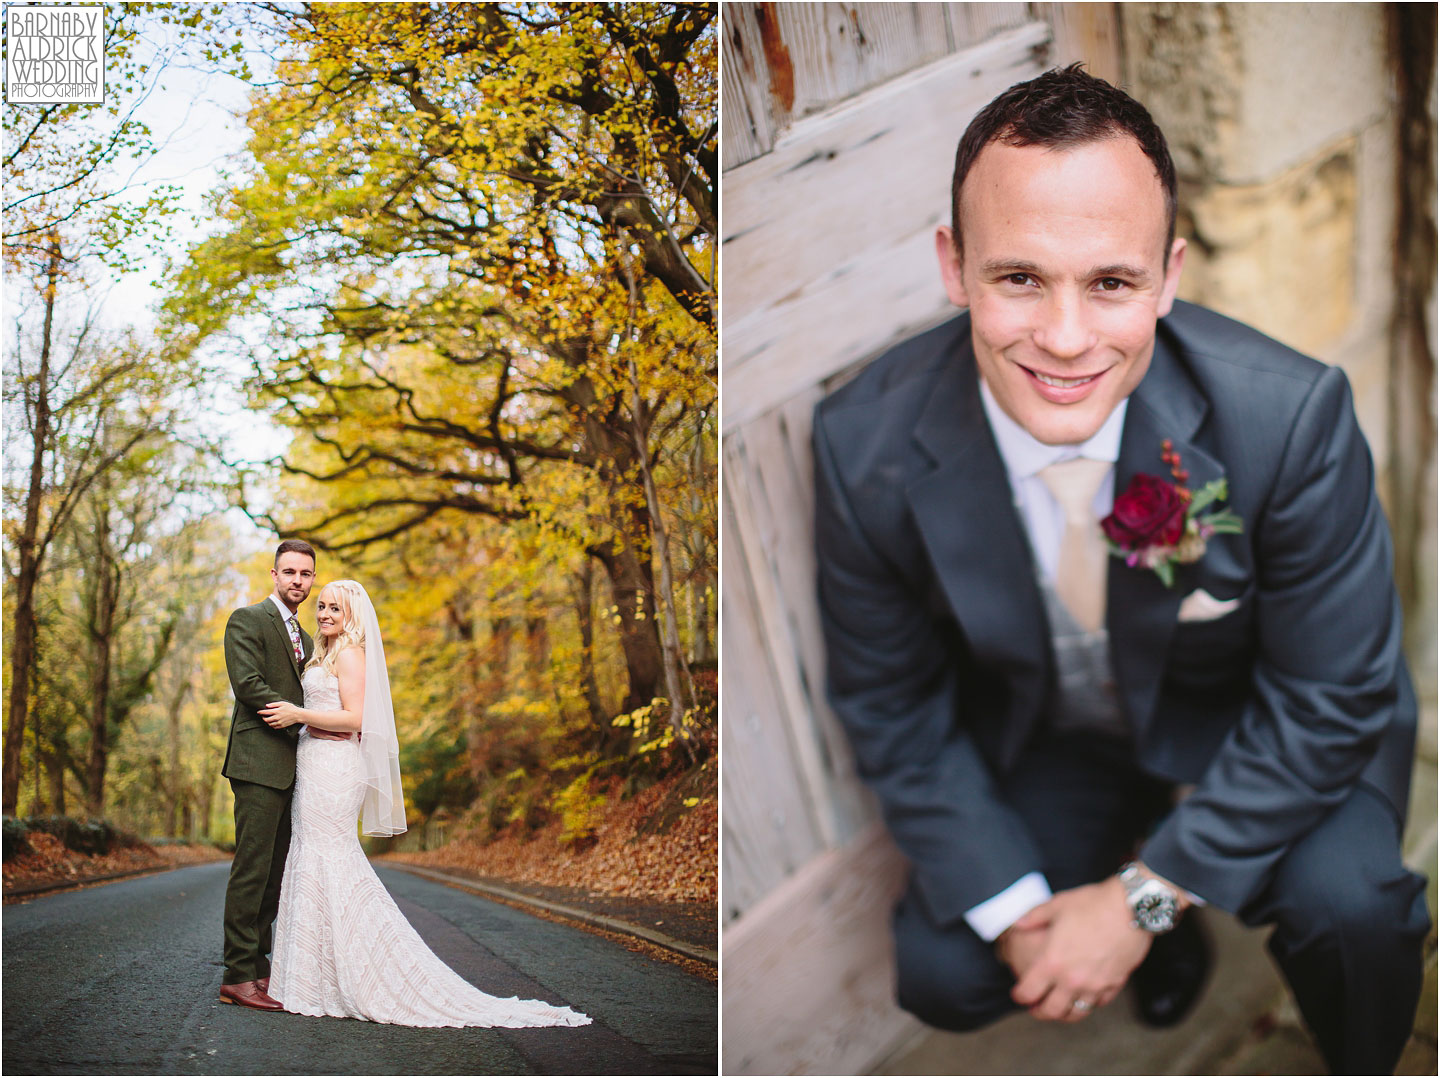 Wedding photography at The Woodman Inn, Yorkshire Wedding Photographer